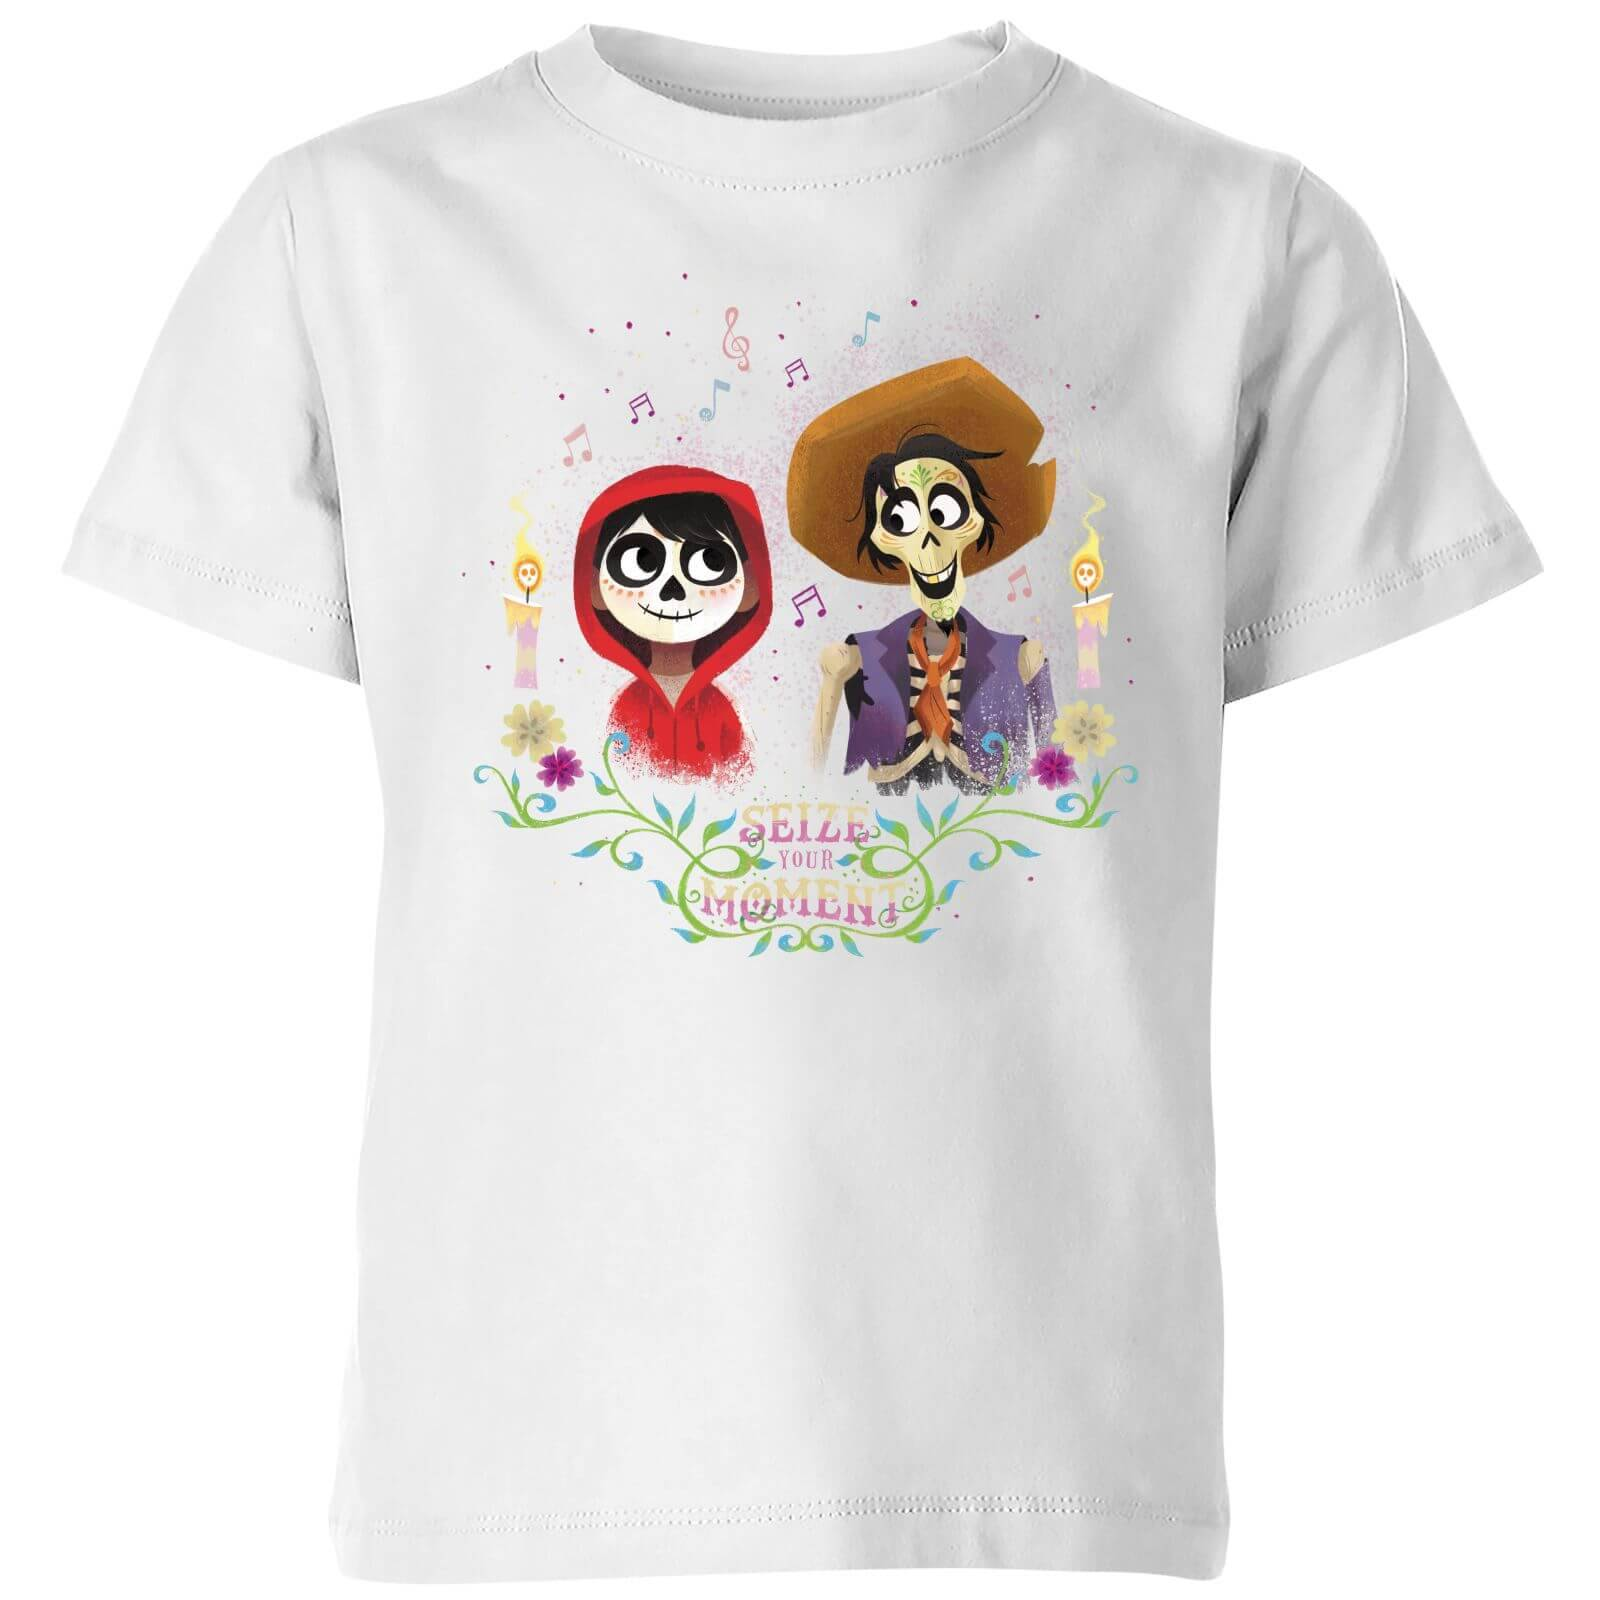 Disney Coco Miguel And Hector Kids' T-Shirt - White - 9-10 Years - White